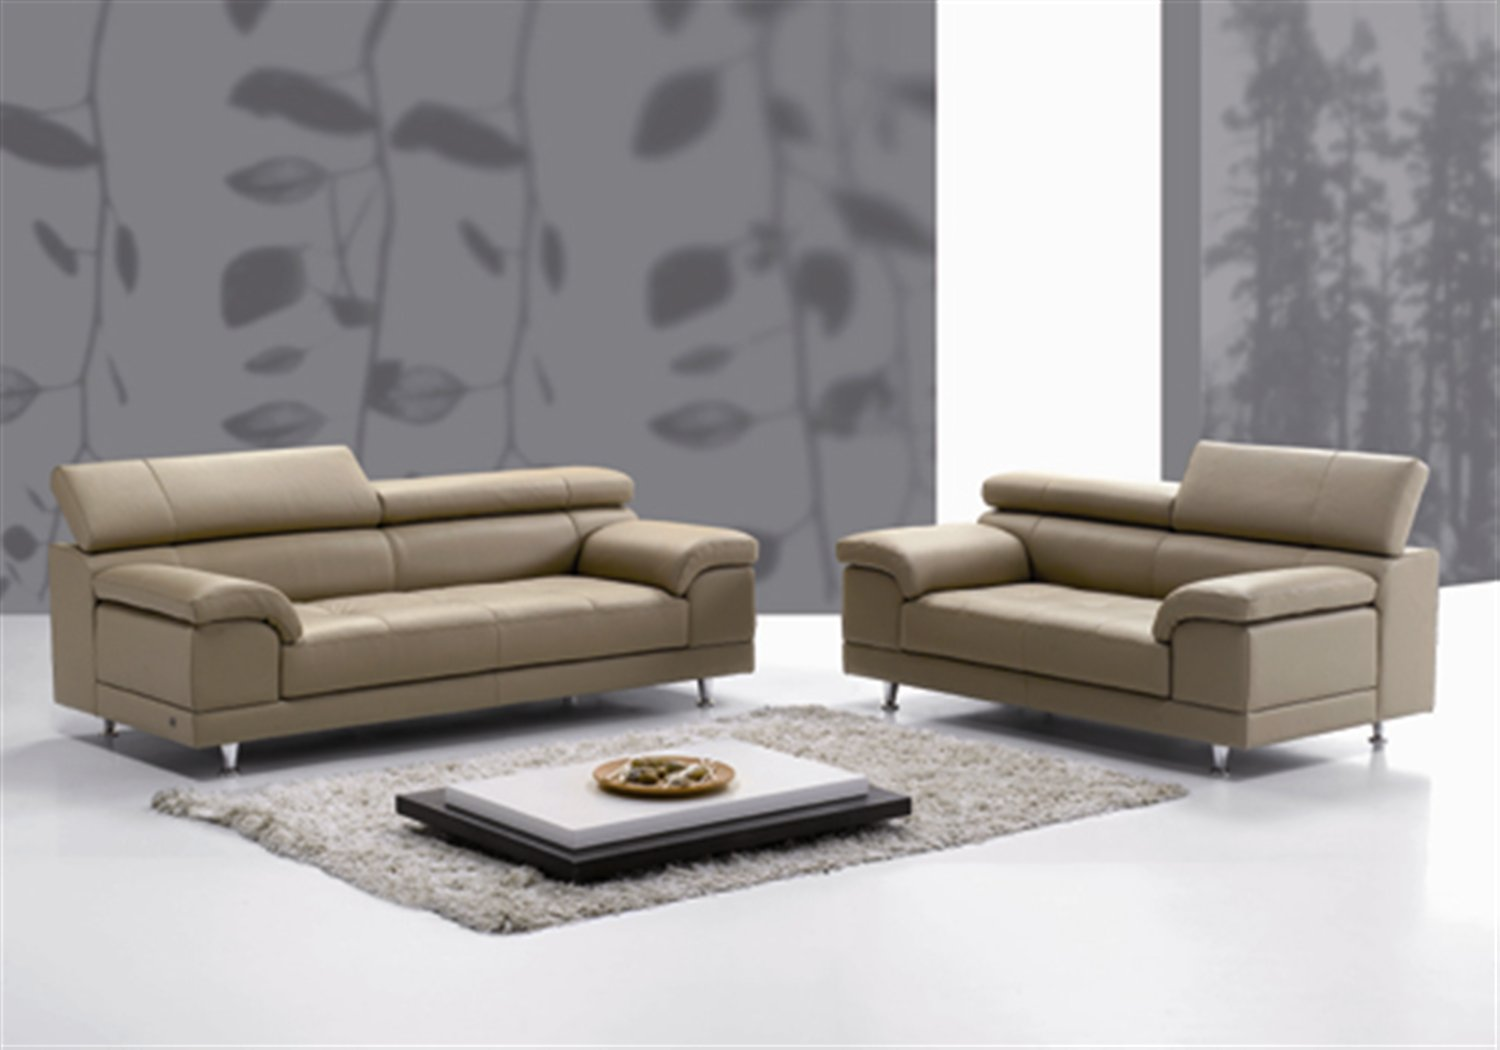 italian leather sofa affordable and quality from piquattro